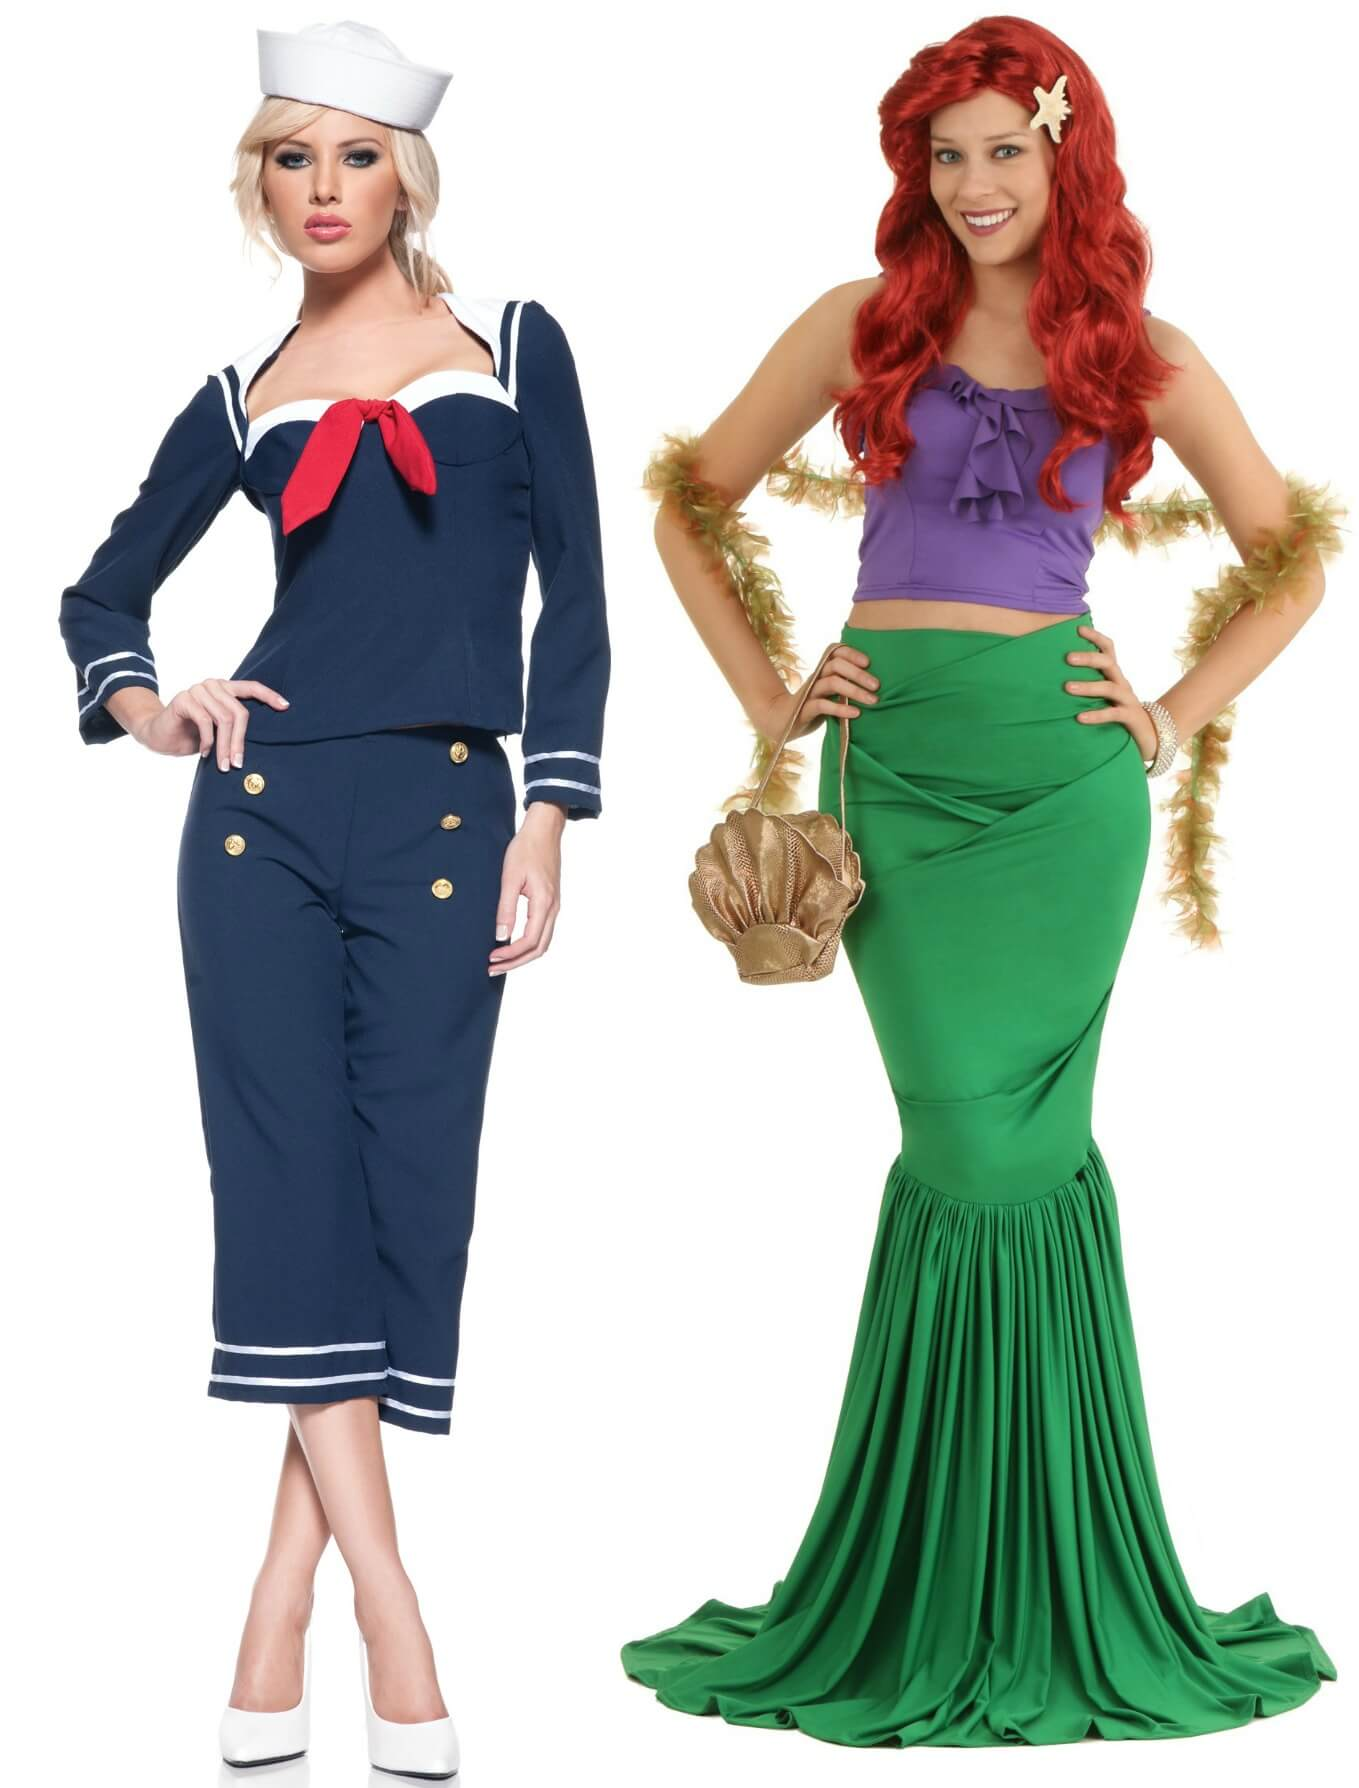 mermaid-and-sailor-bff-costumes